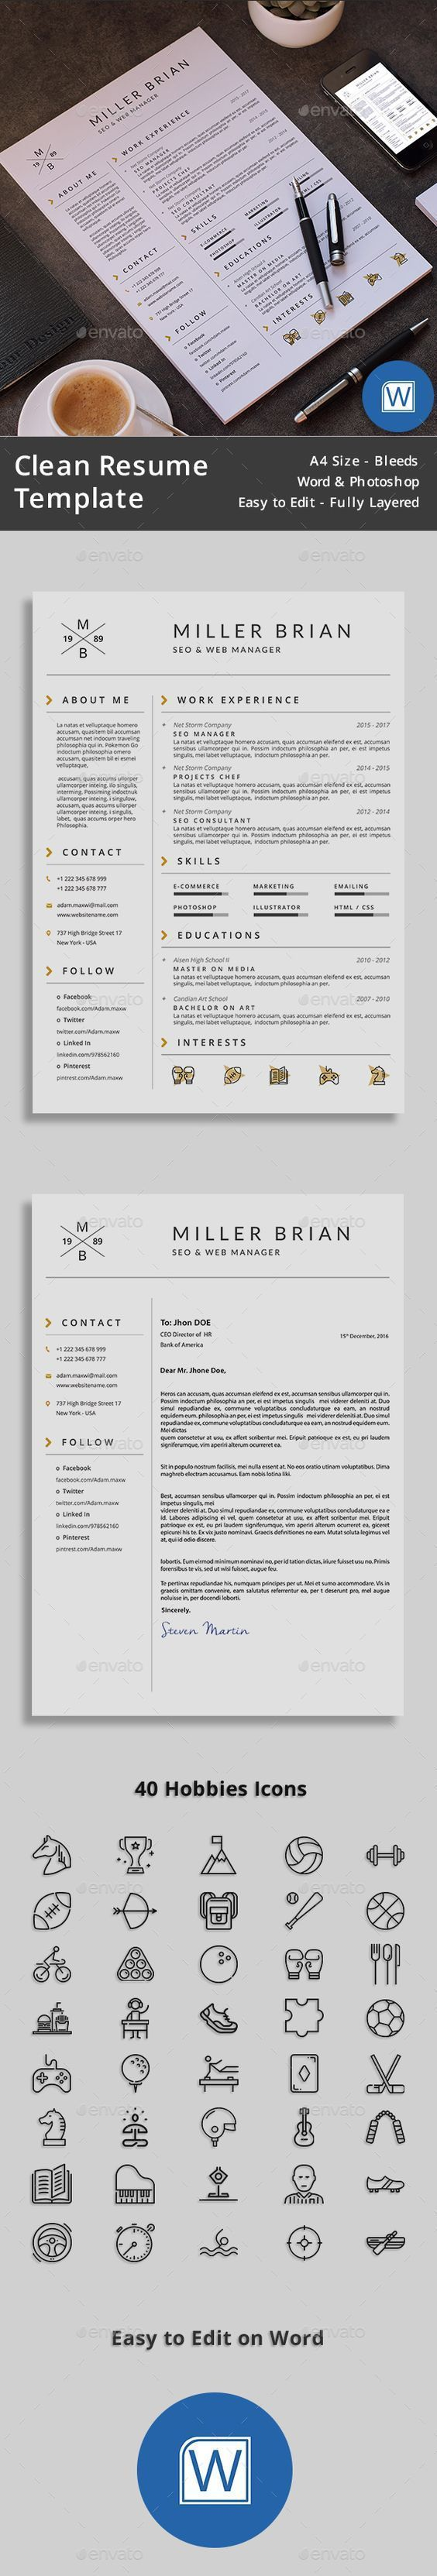 director of business development resume%0A Professional  u     Modern Resume Template for MS Word   CV Template for word    Resume template for word       Editable   Instant Digital Download